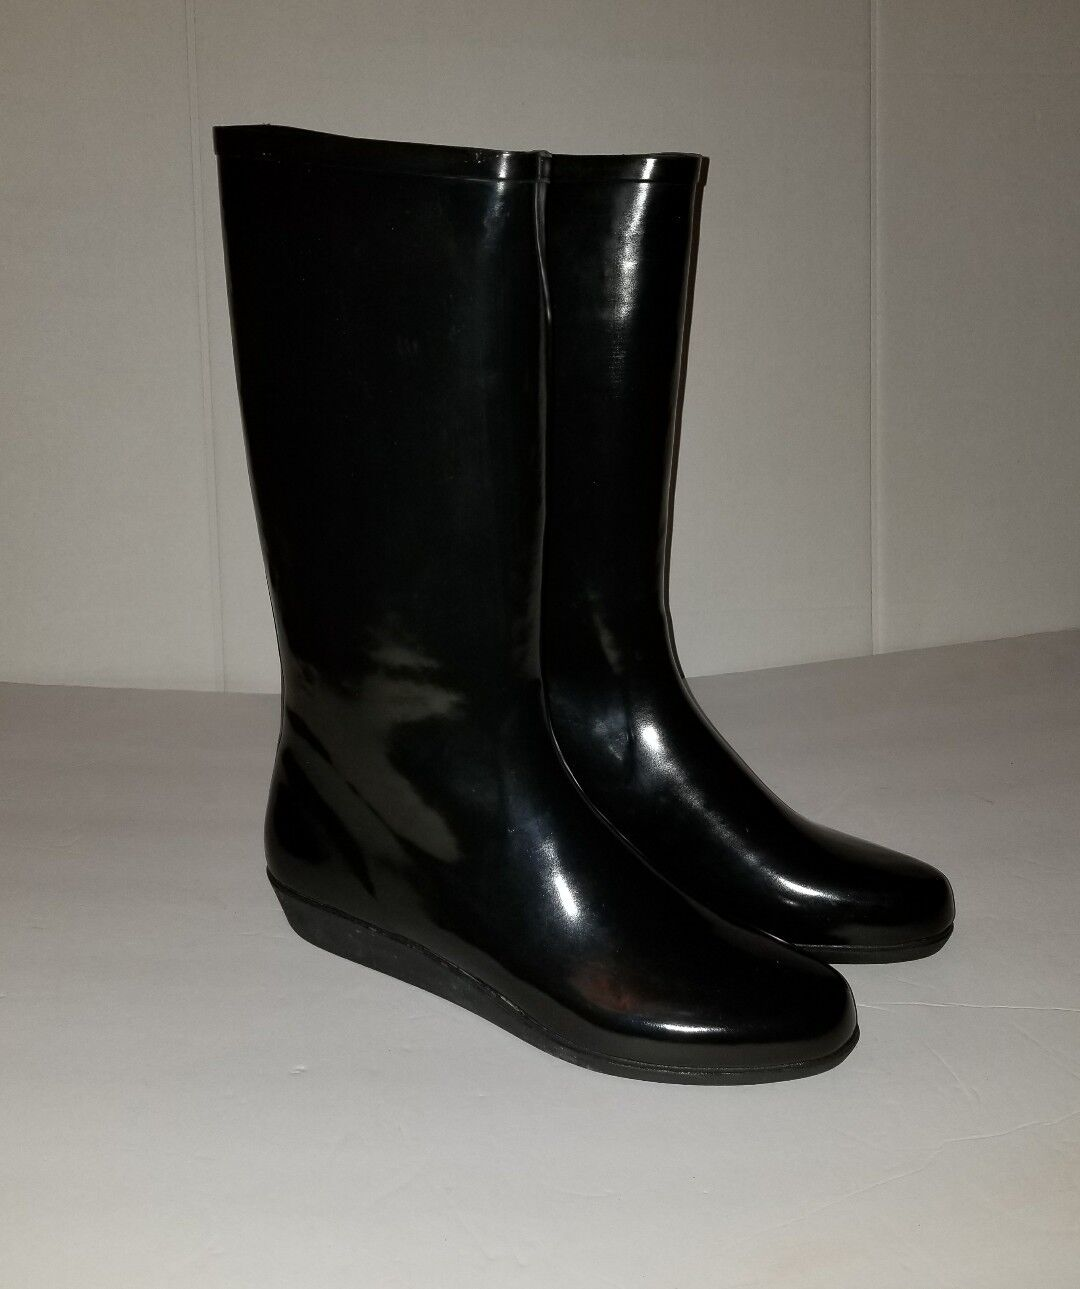 NEW WOMEN'S DAV LUXURY WEDGE SOLID RUBBER RAINBOOTS SIZE: 10 FITS 9 or 8.5